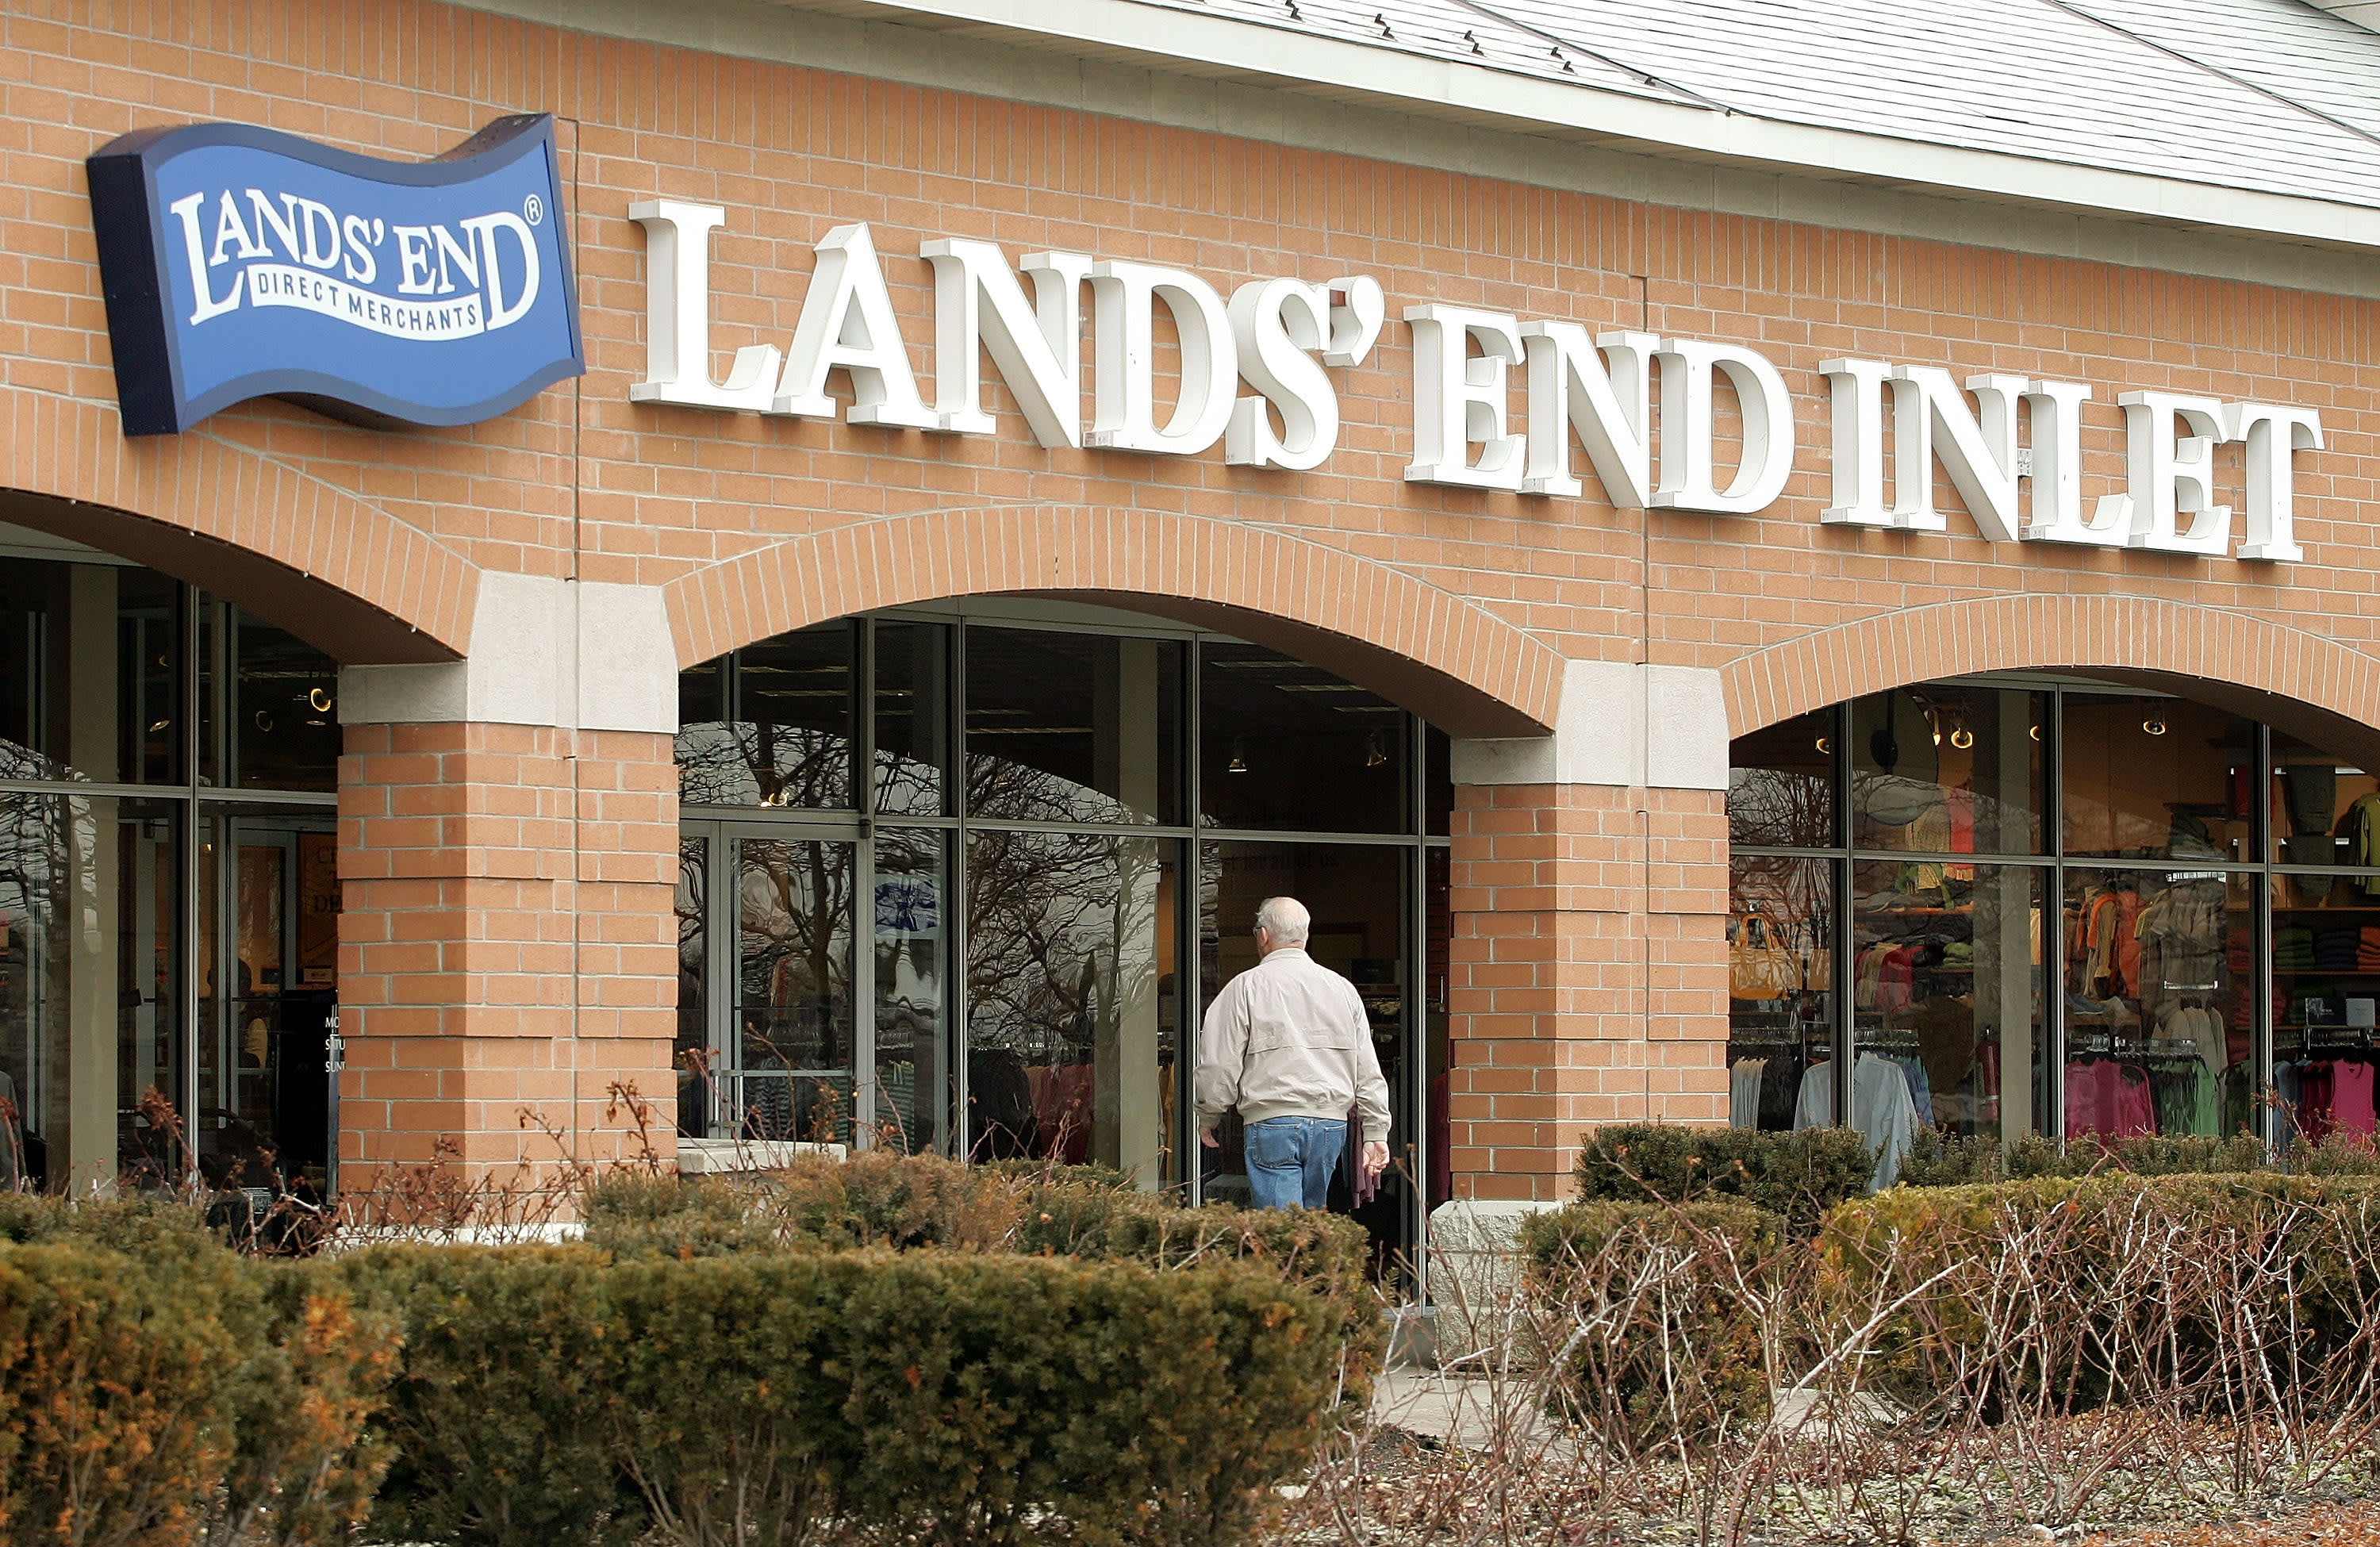 Lands' End CEO says it's difficult to accurately predict the holiday season due to factory delays